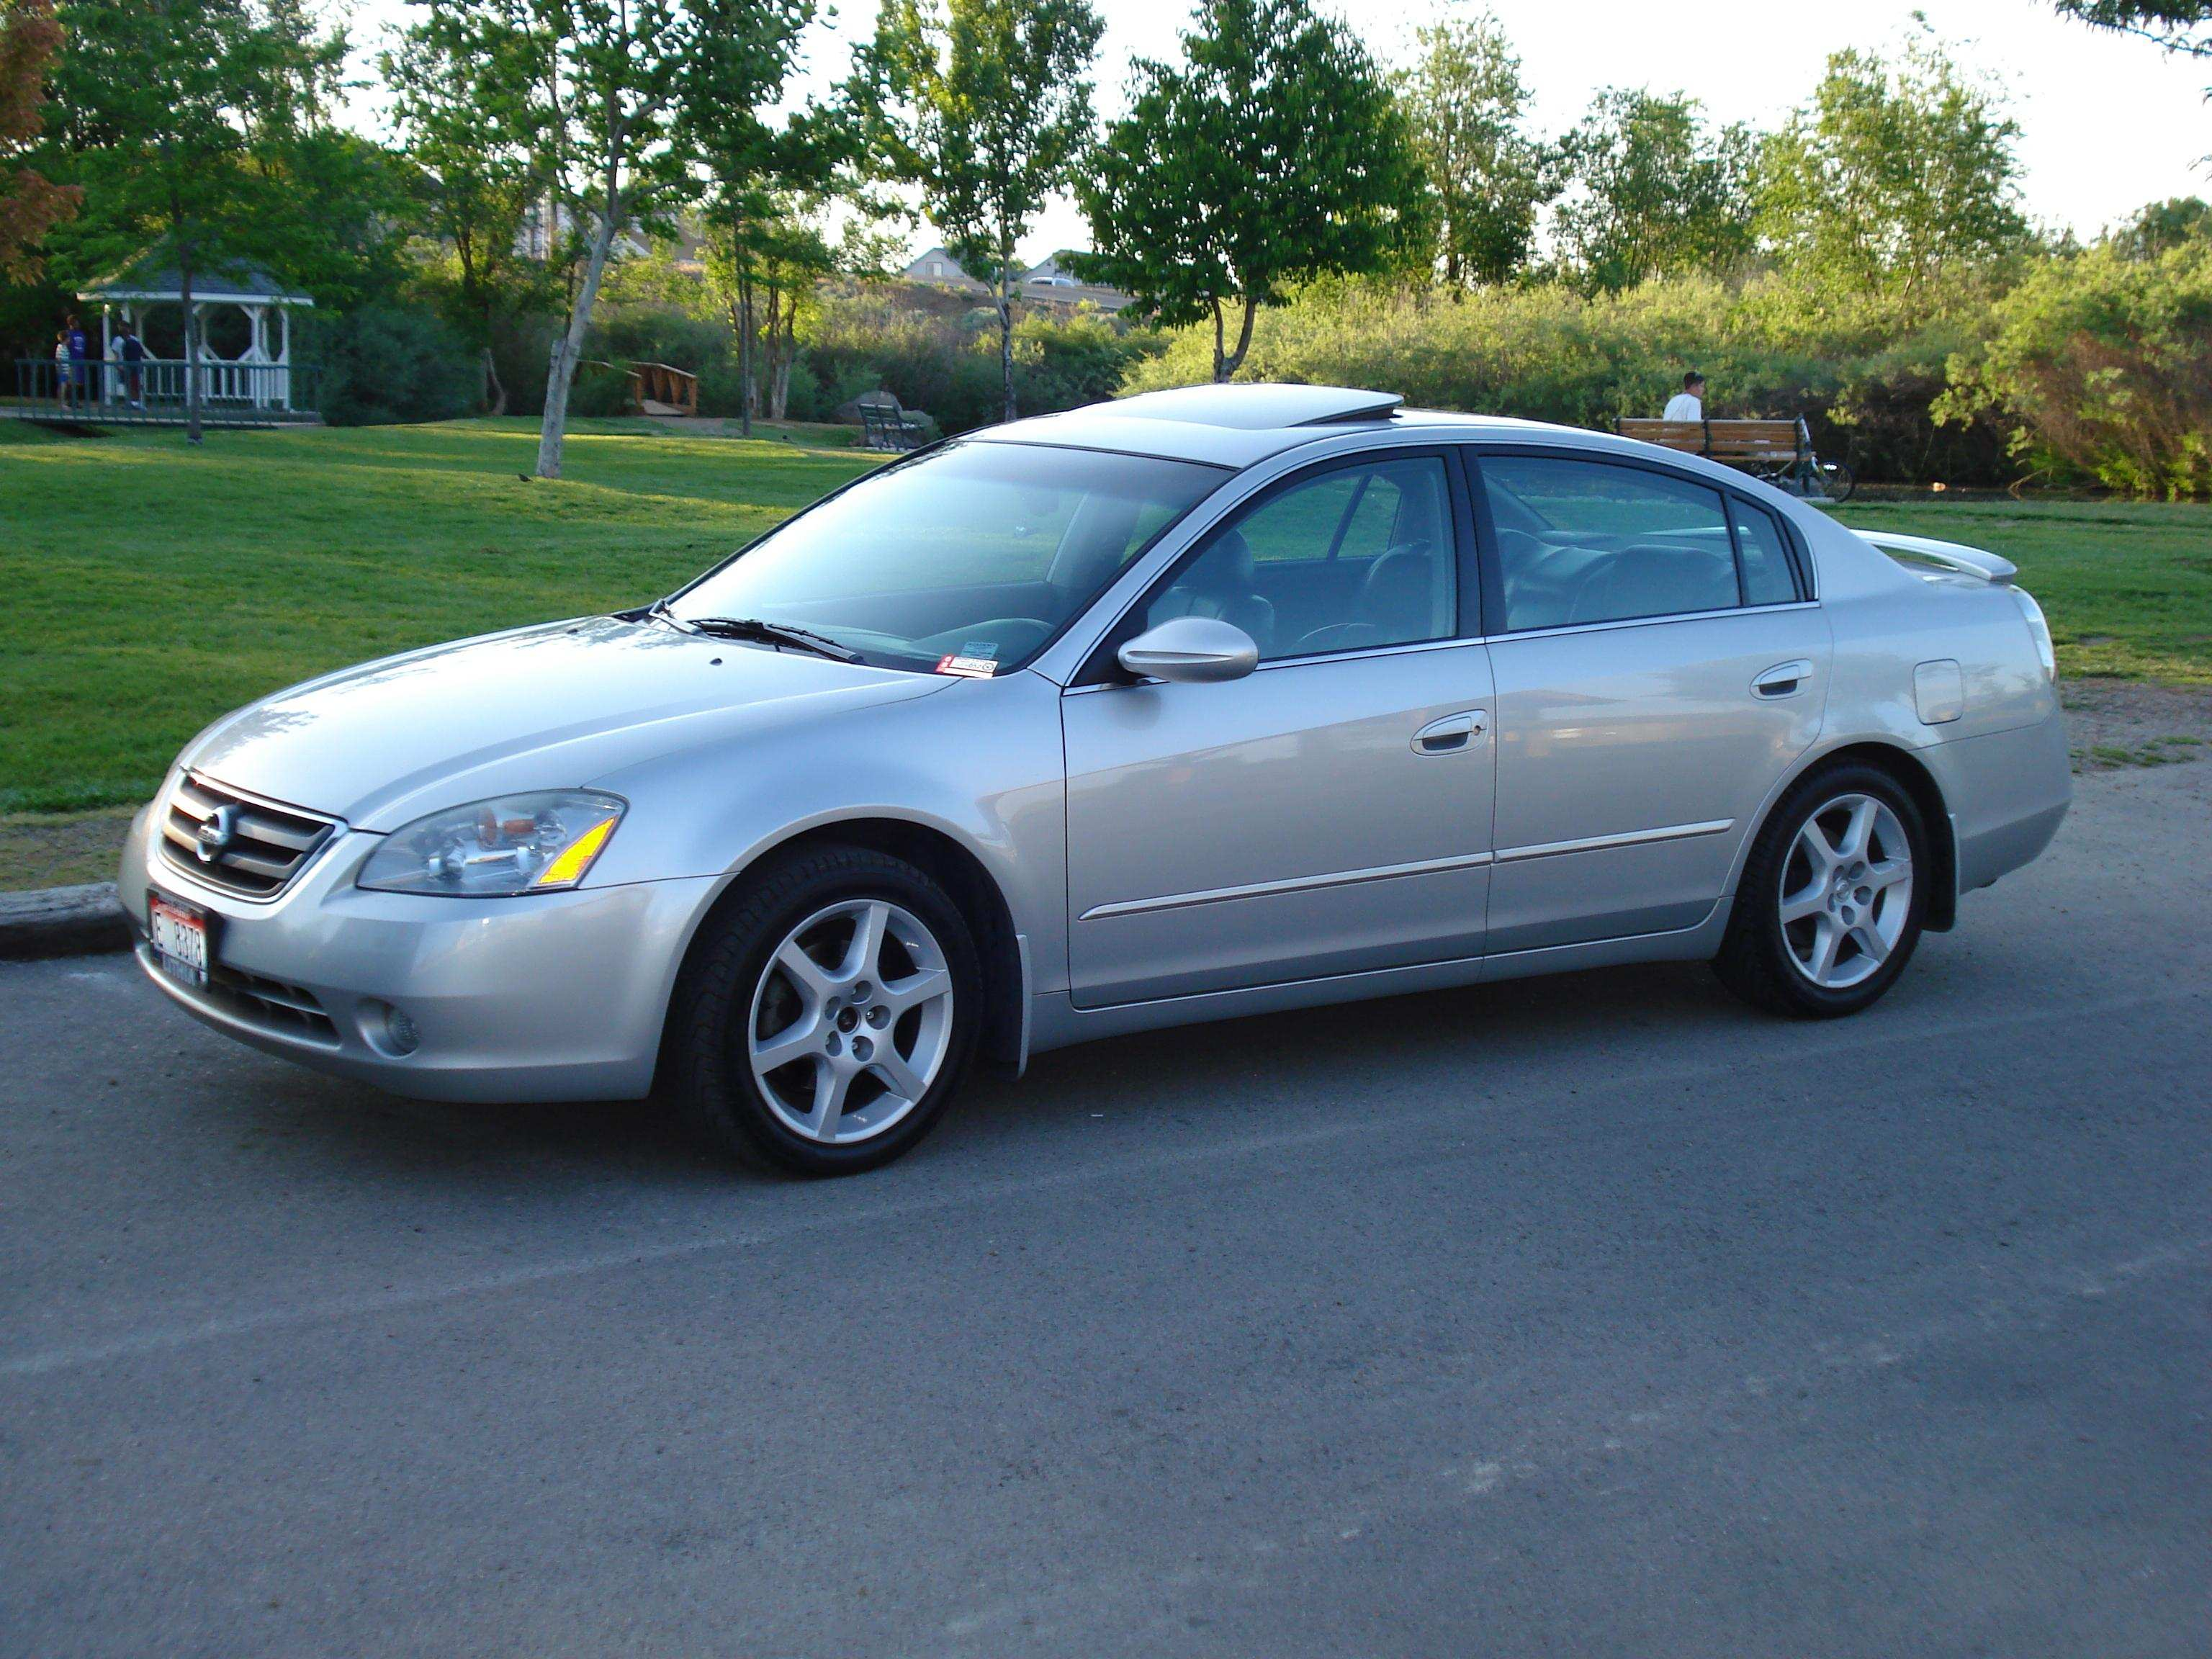 59 The Best 2003 Nissan Altima 2 5 New Model And Performance